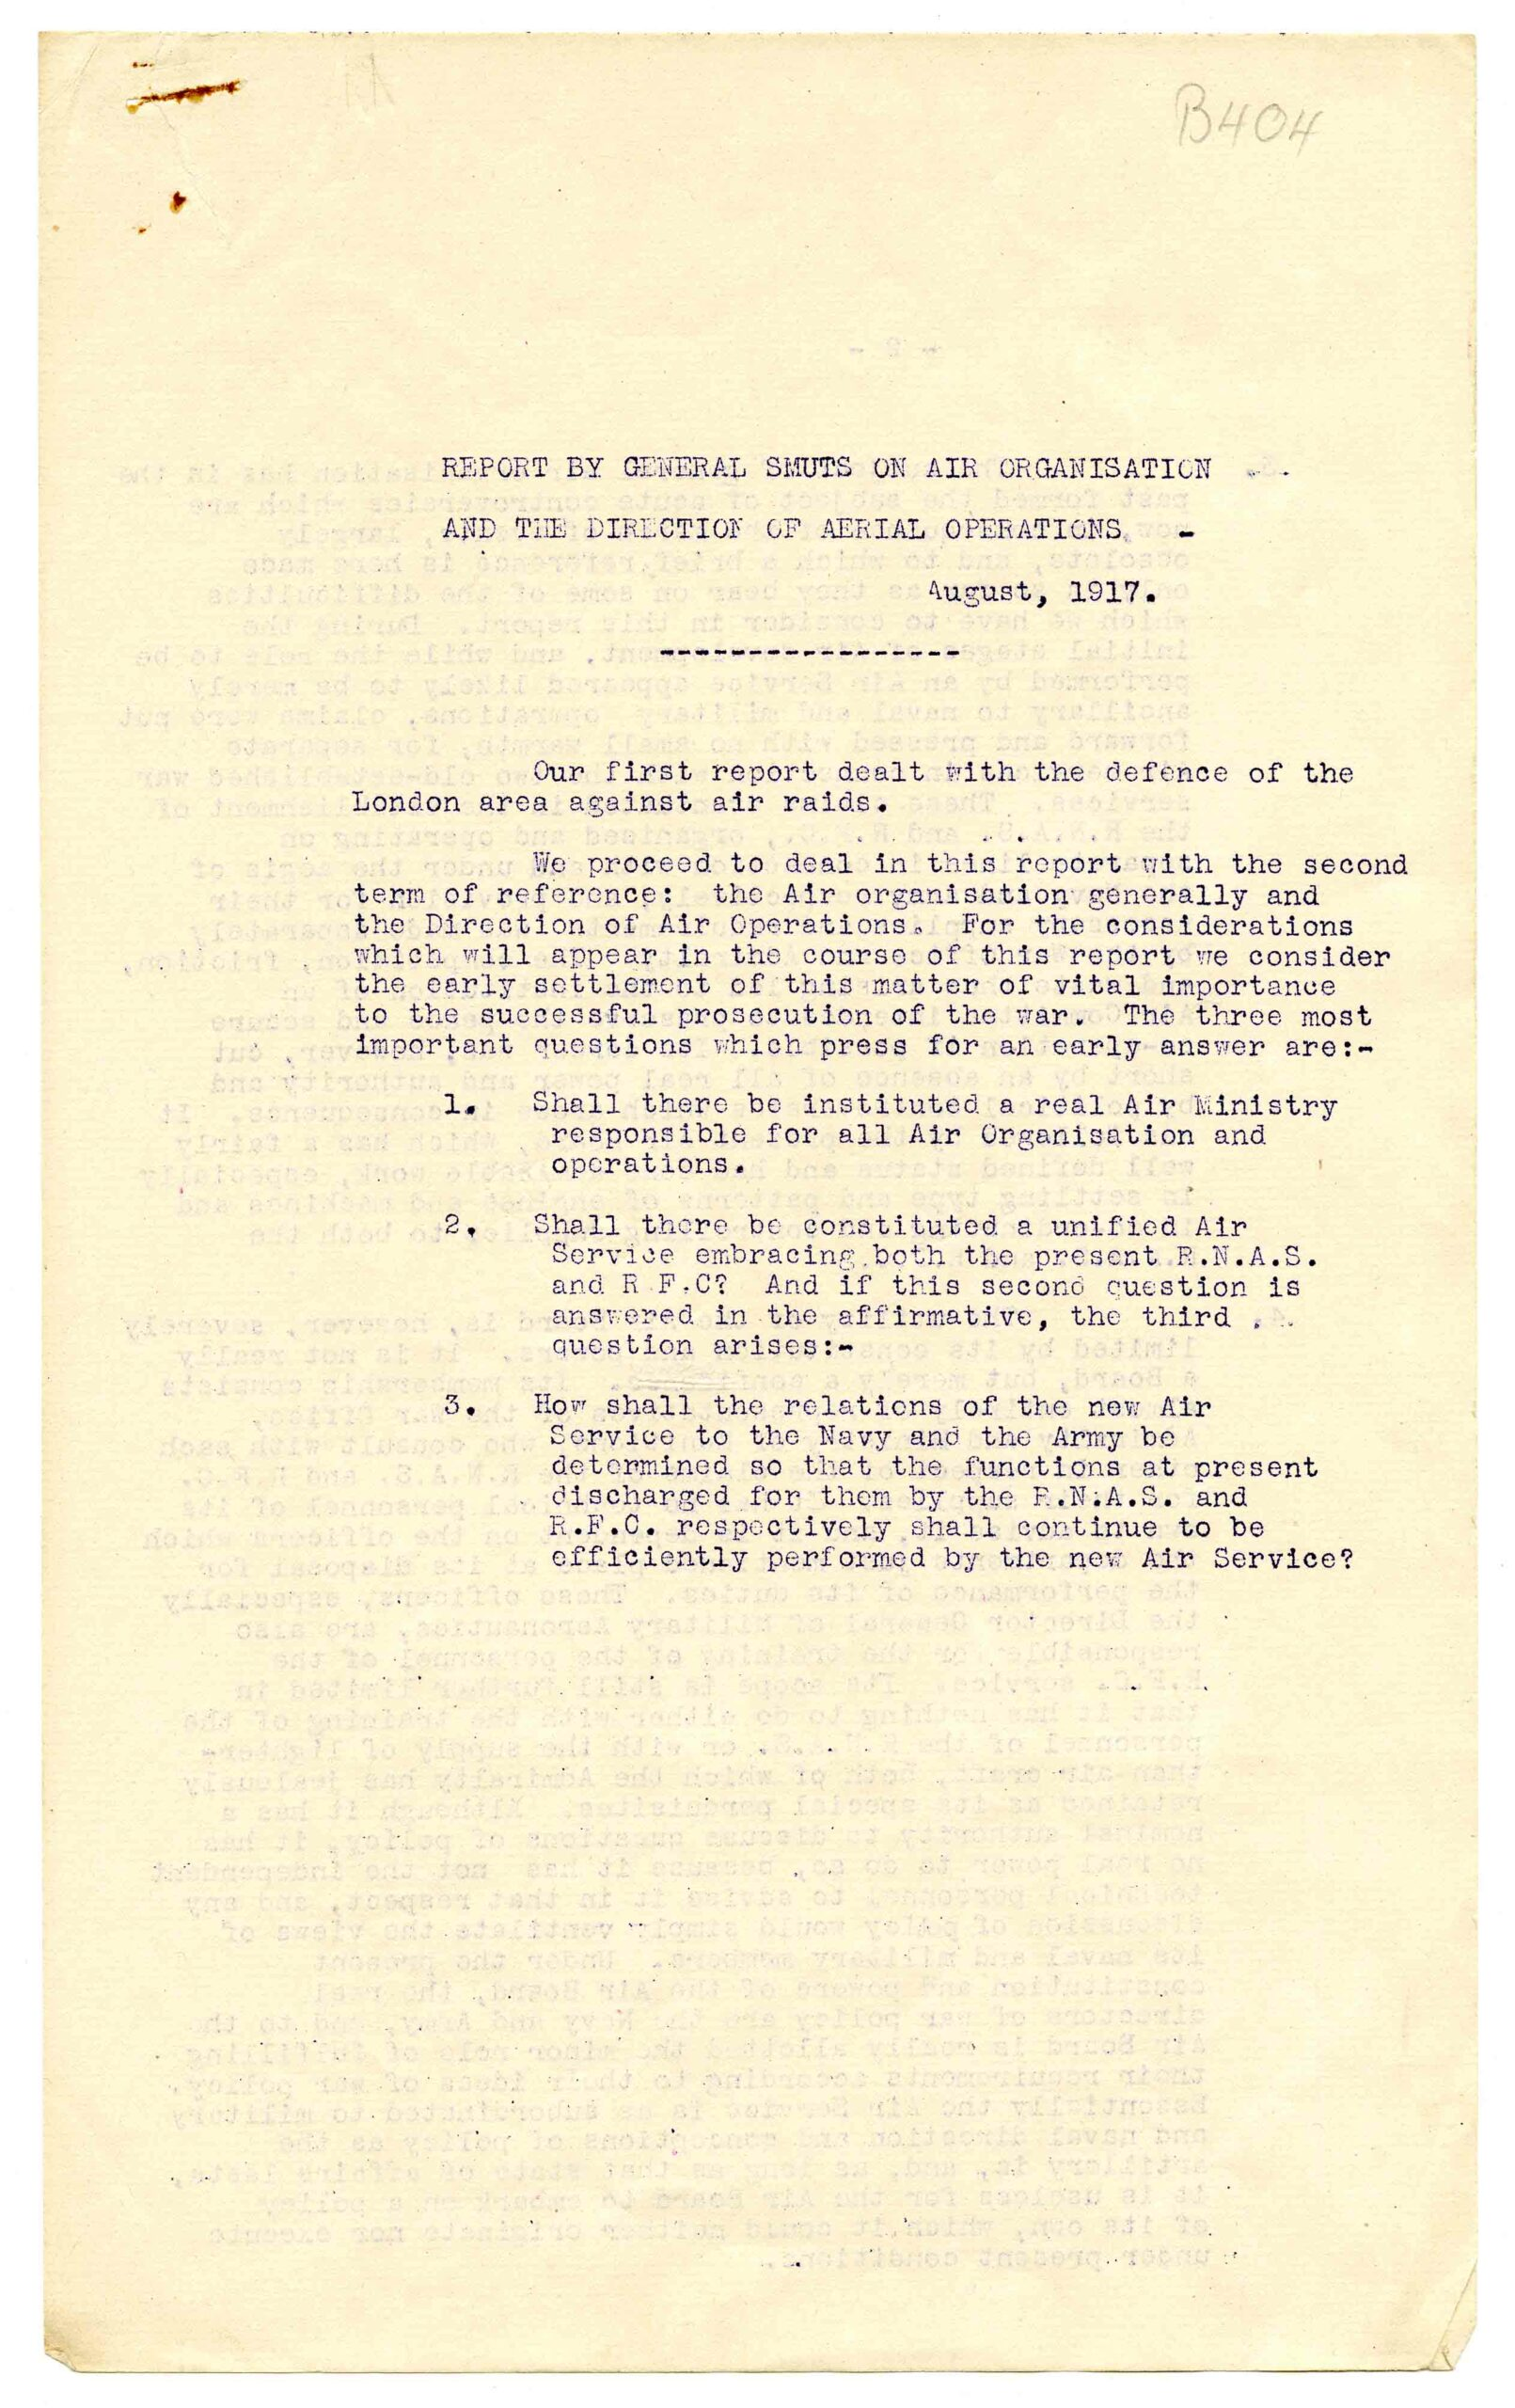 B404 Report by General Smuts on air organisation and the direction of aerial operations.